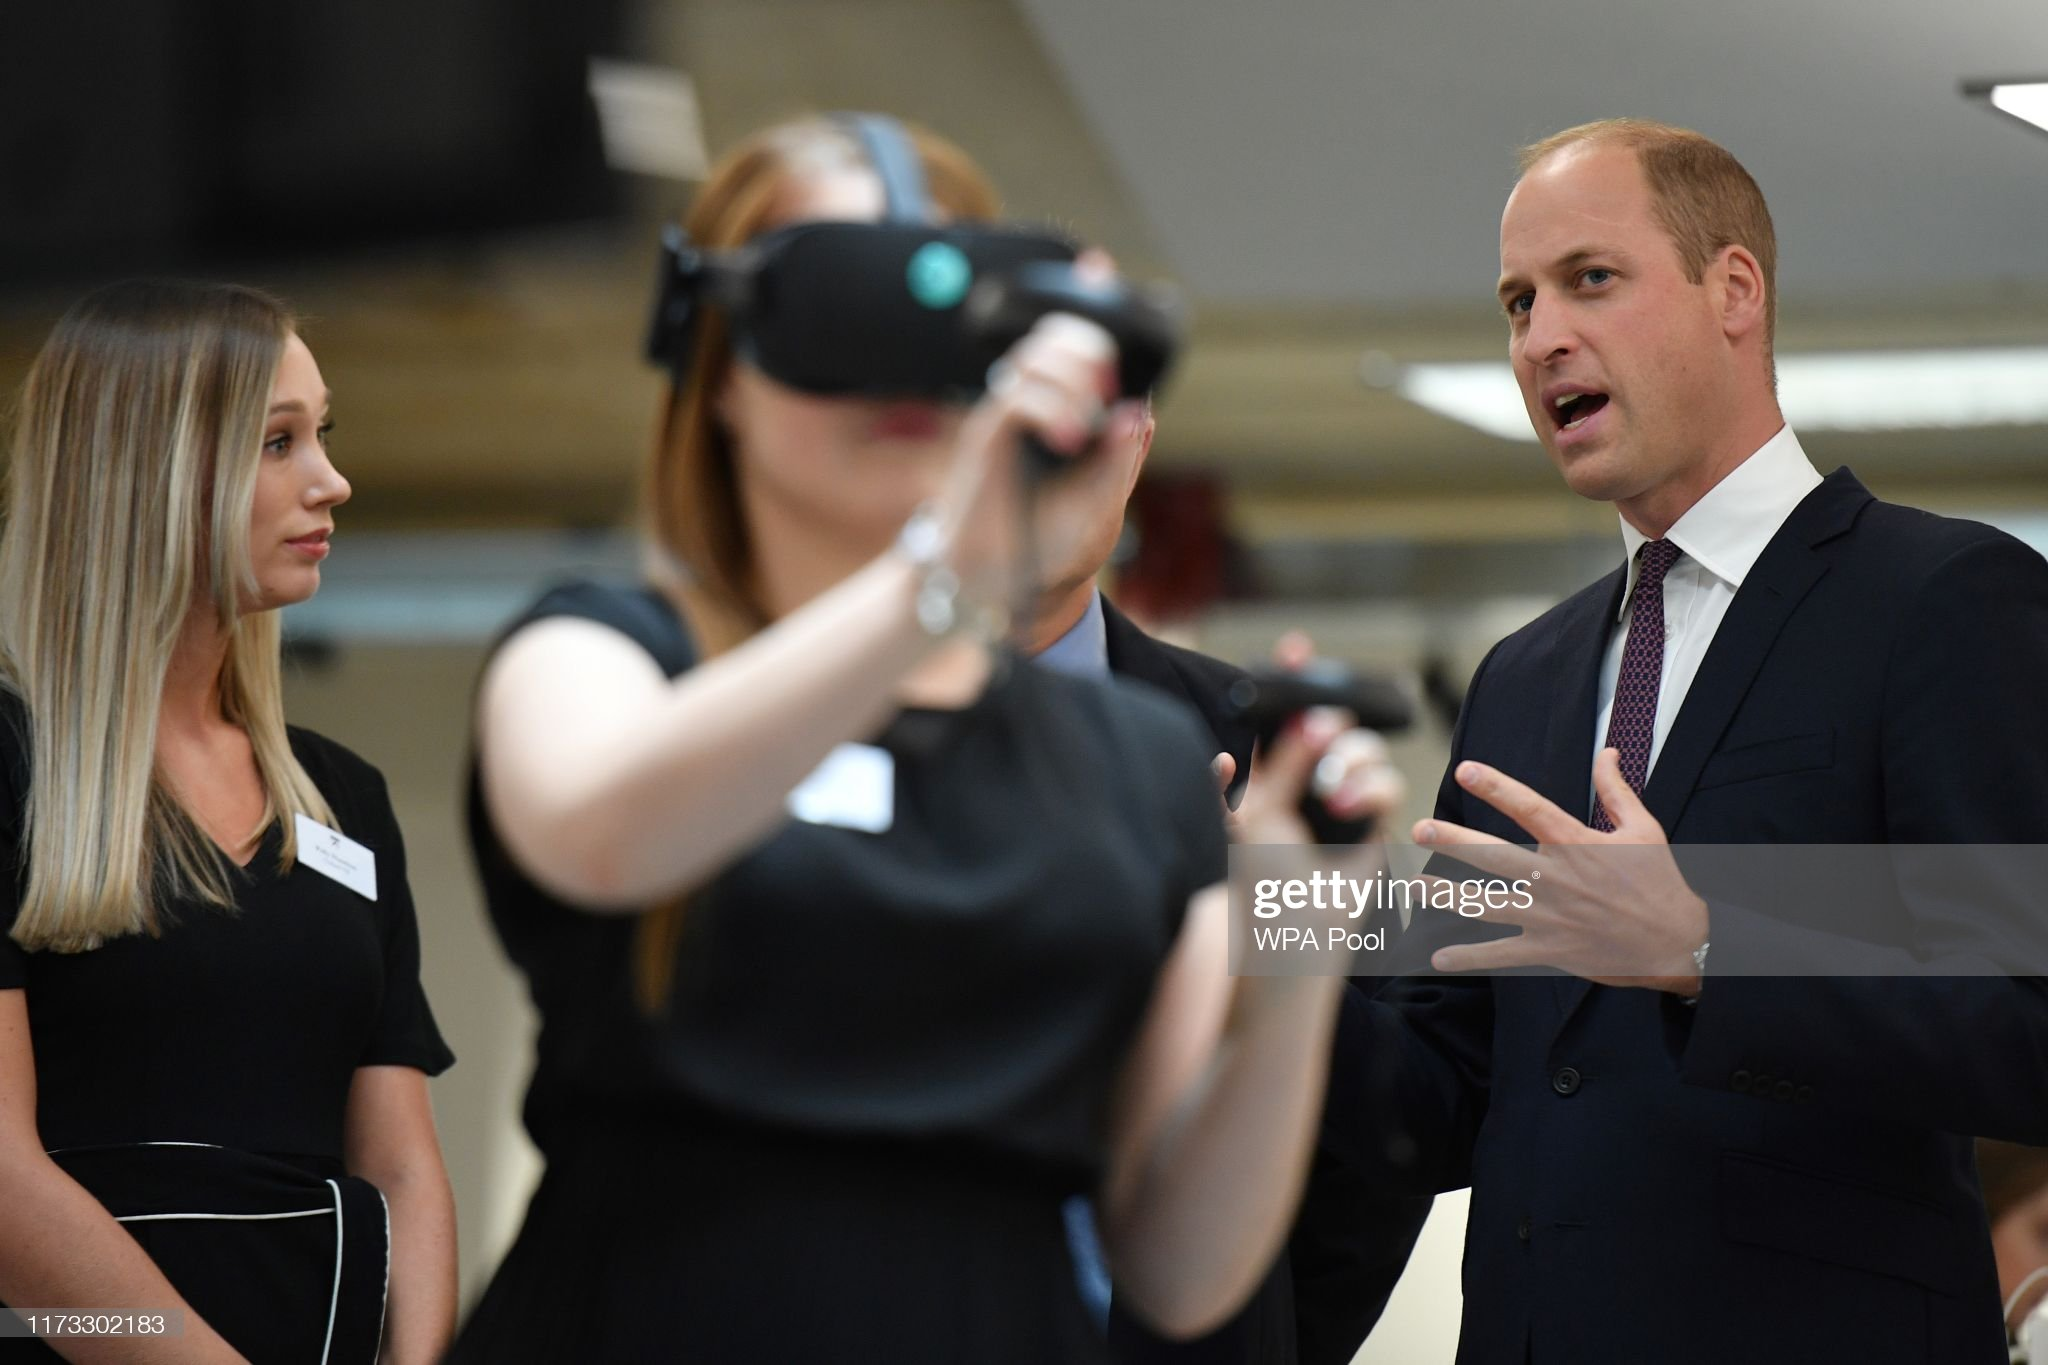 prince-william-duke-of-cambridge-watches-a-virtual-reality-for-a-picture-id1173302183